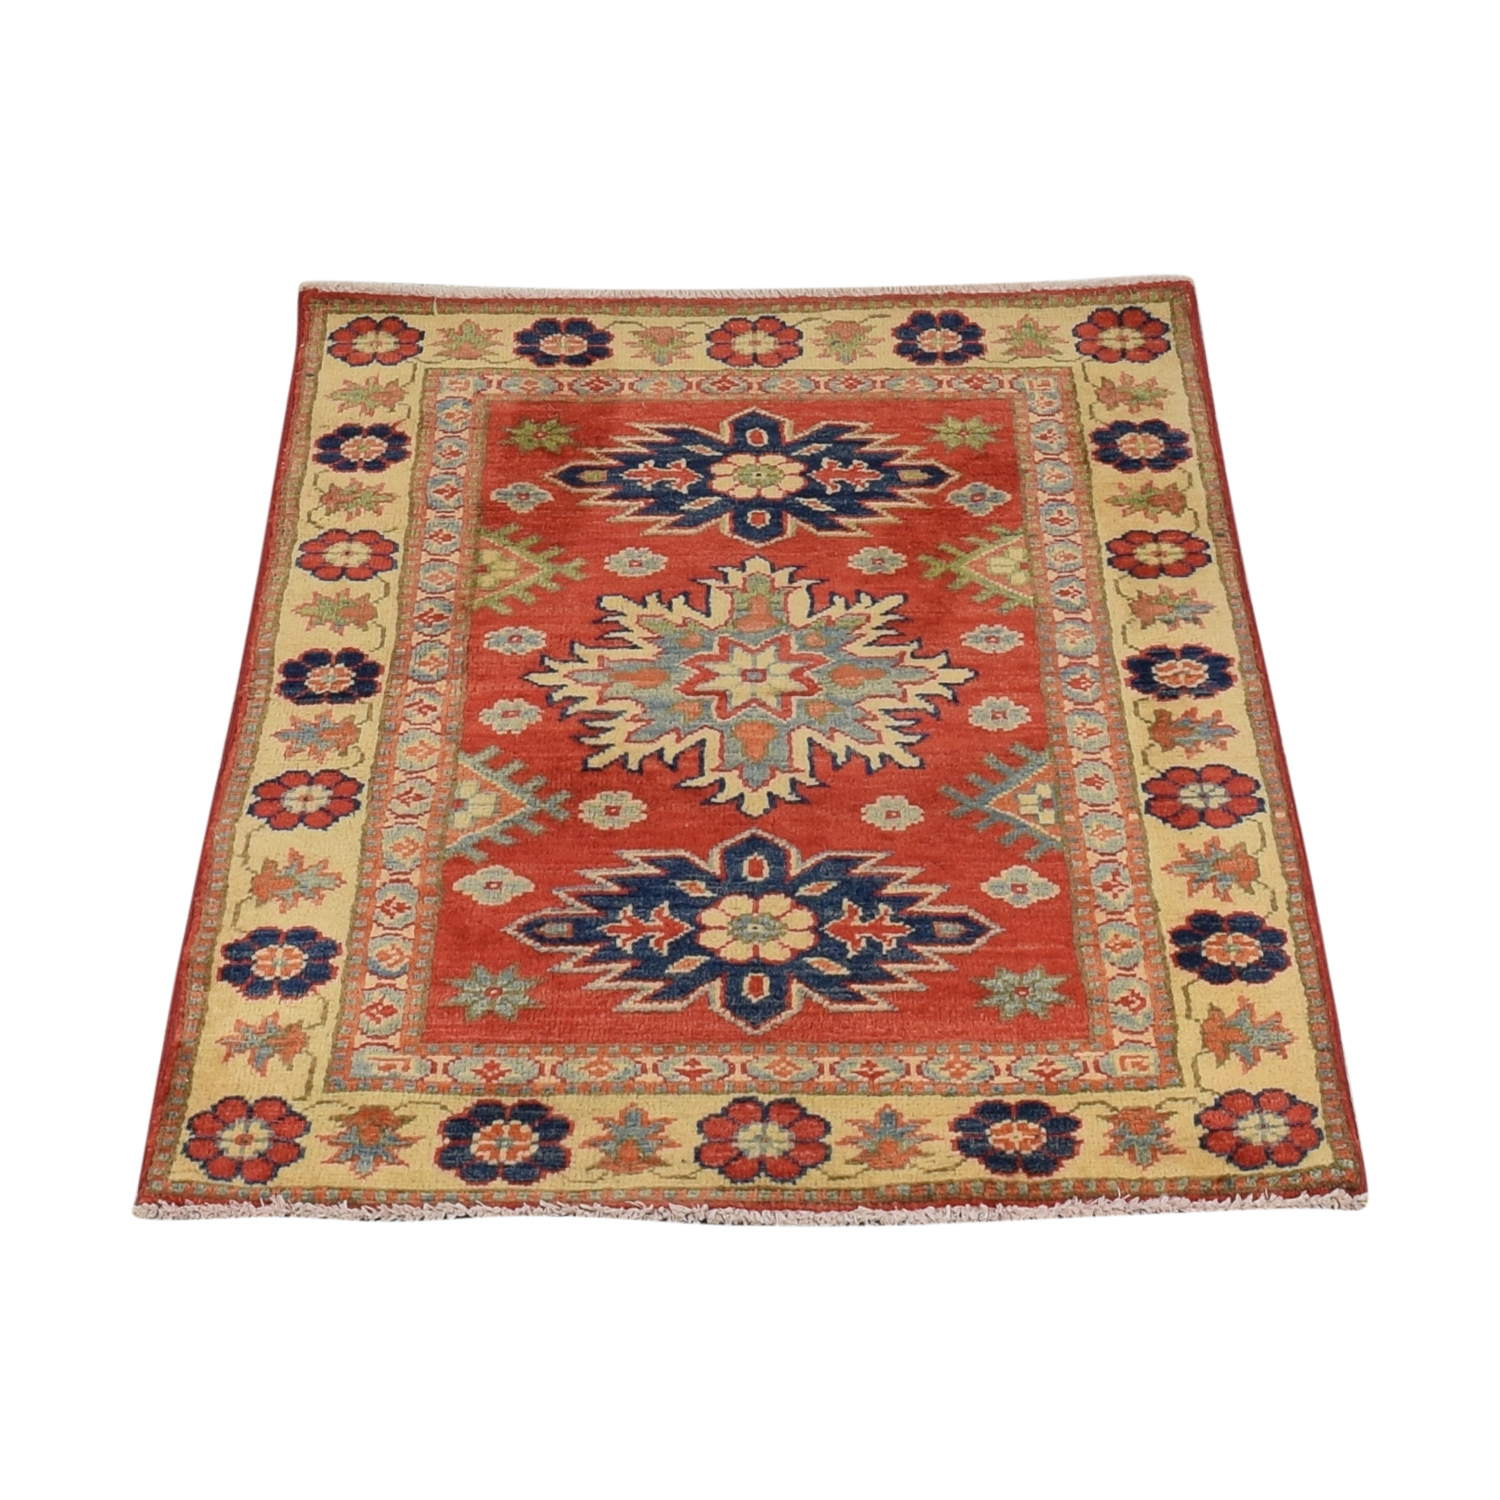 shop Farooq & Brothers Handknotted Rug  Rugs